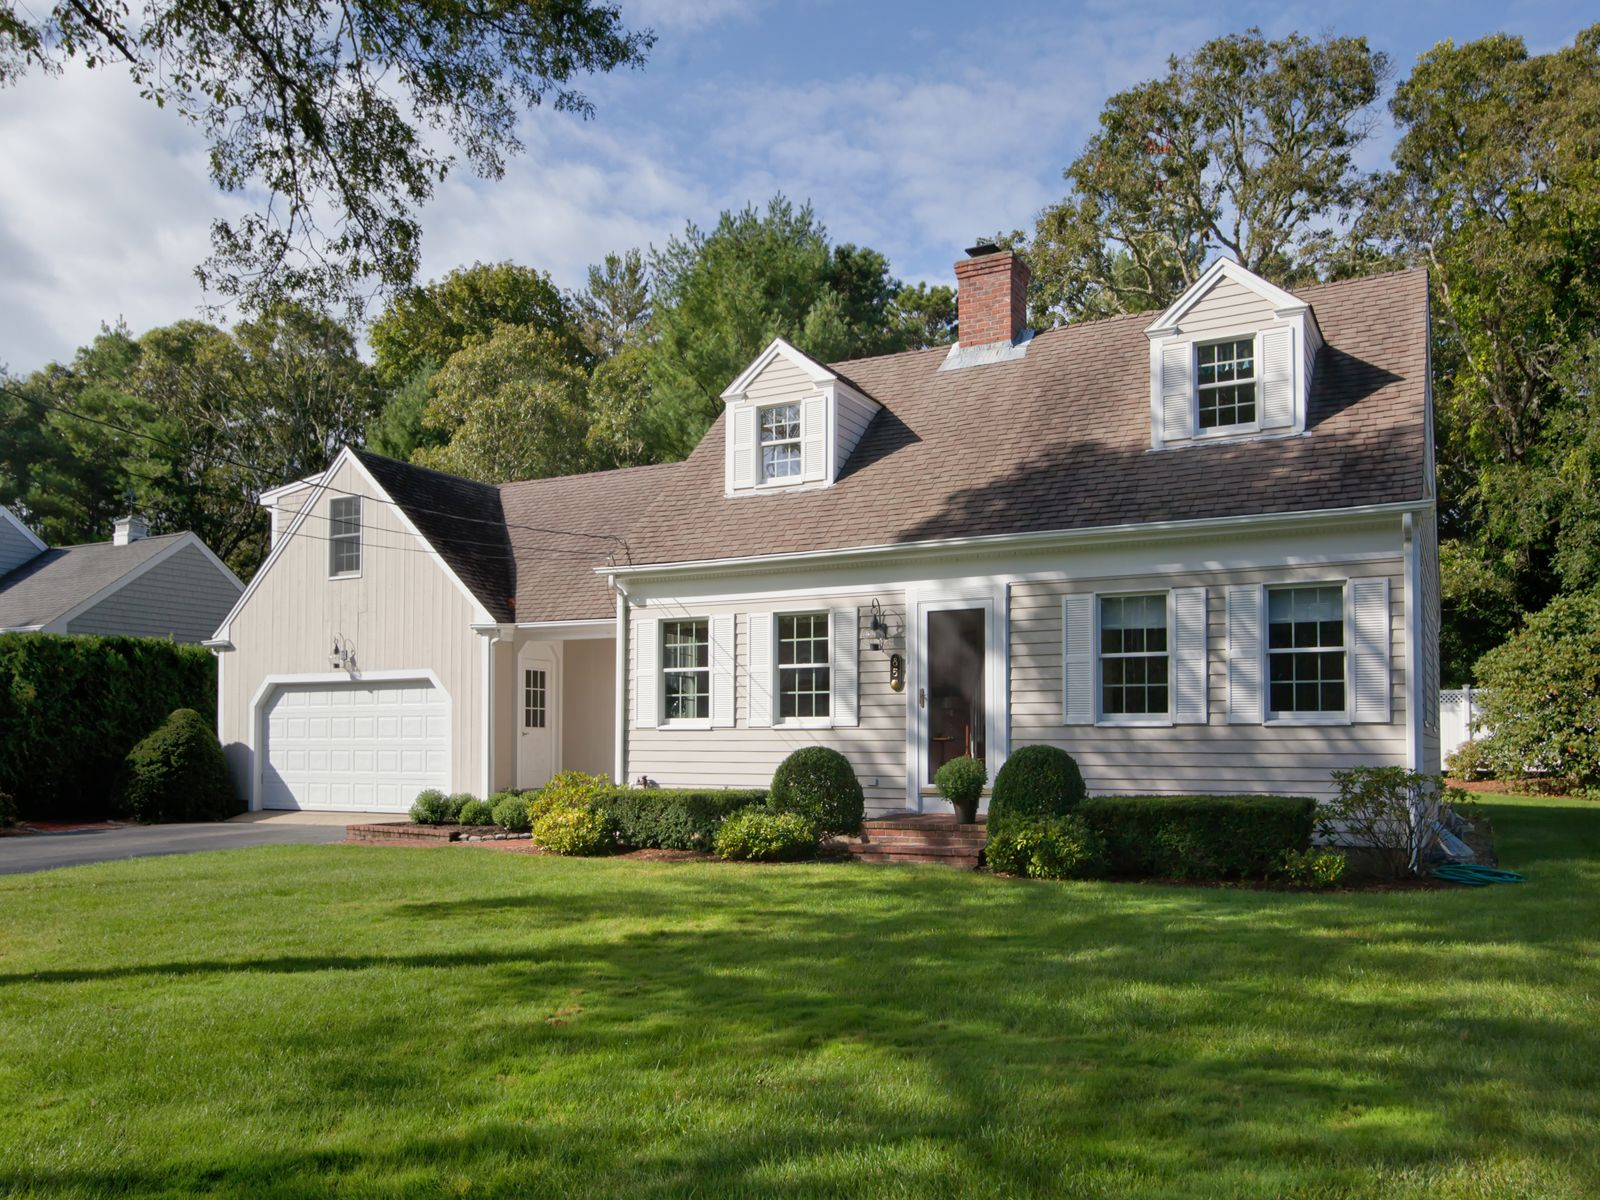 Charming Wianno Cape Residence, Osterville MA Single Family Home - Cape Cod Real Estate